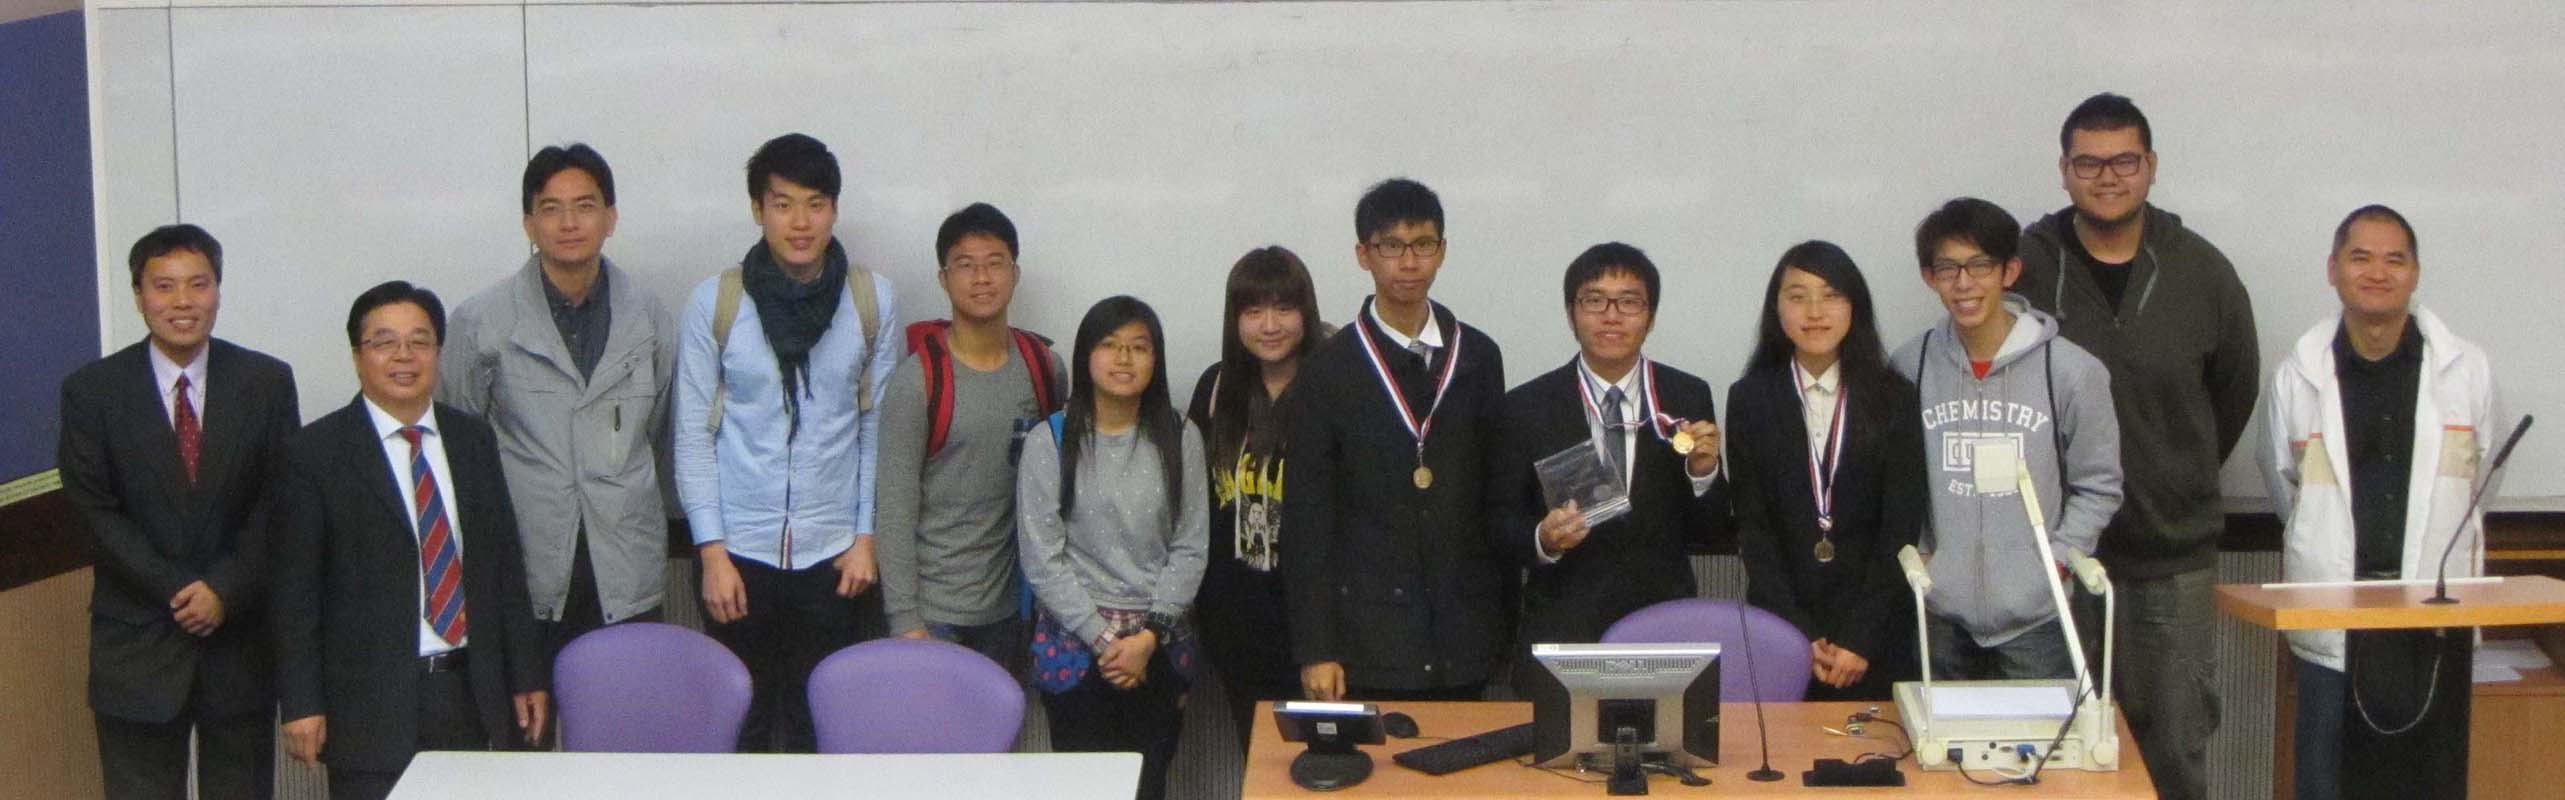 CUHK Team taking photo with the Chairman and teaching staff